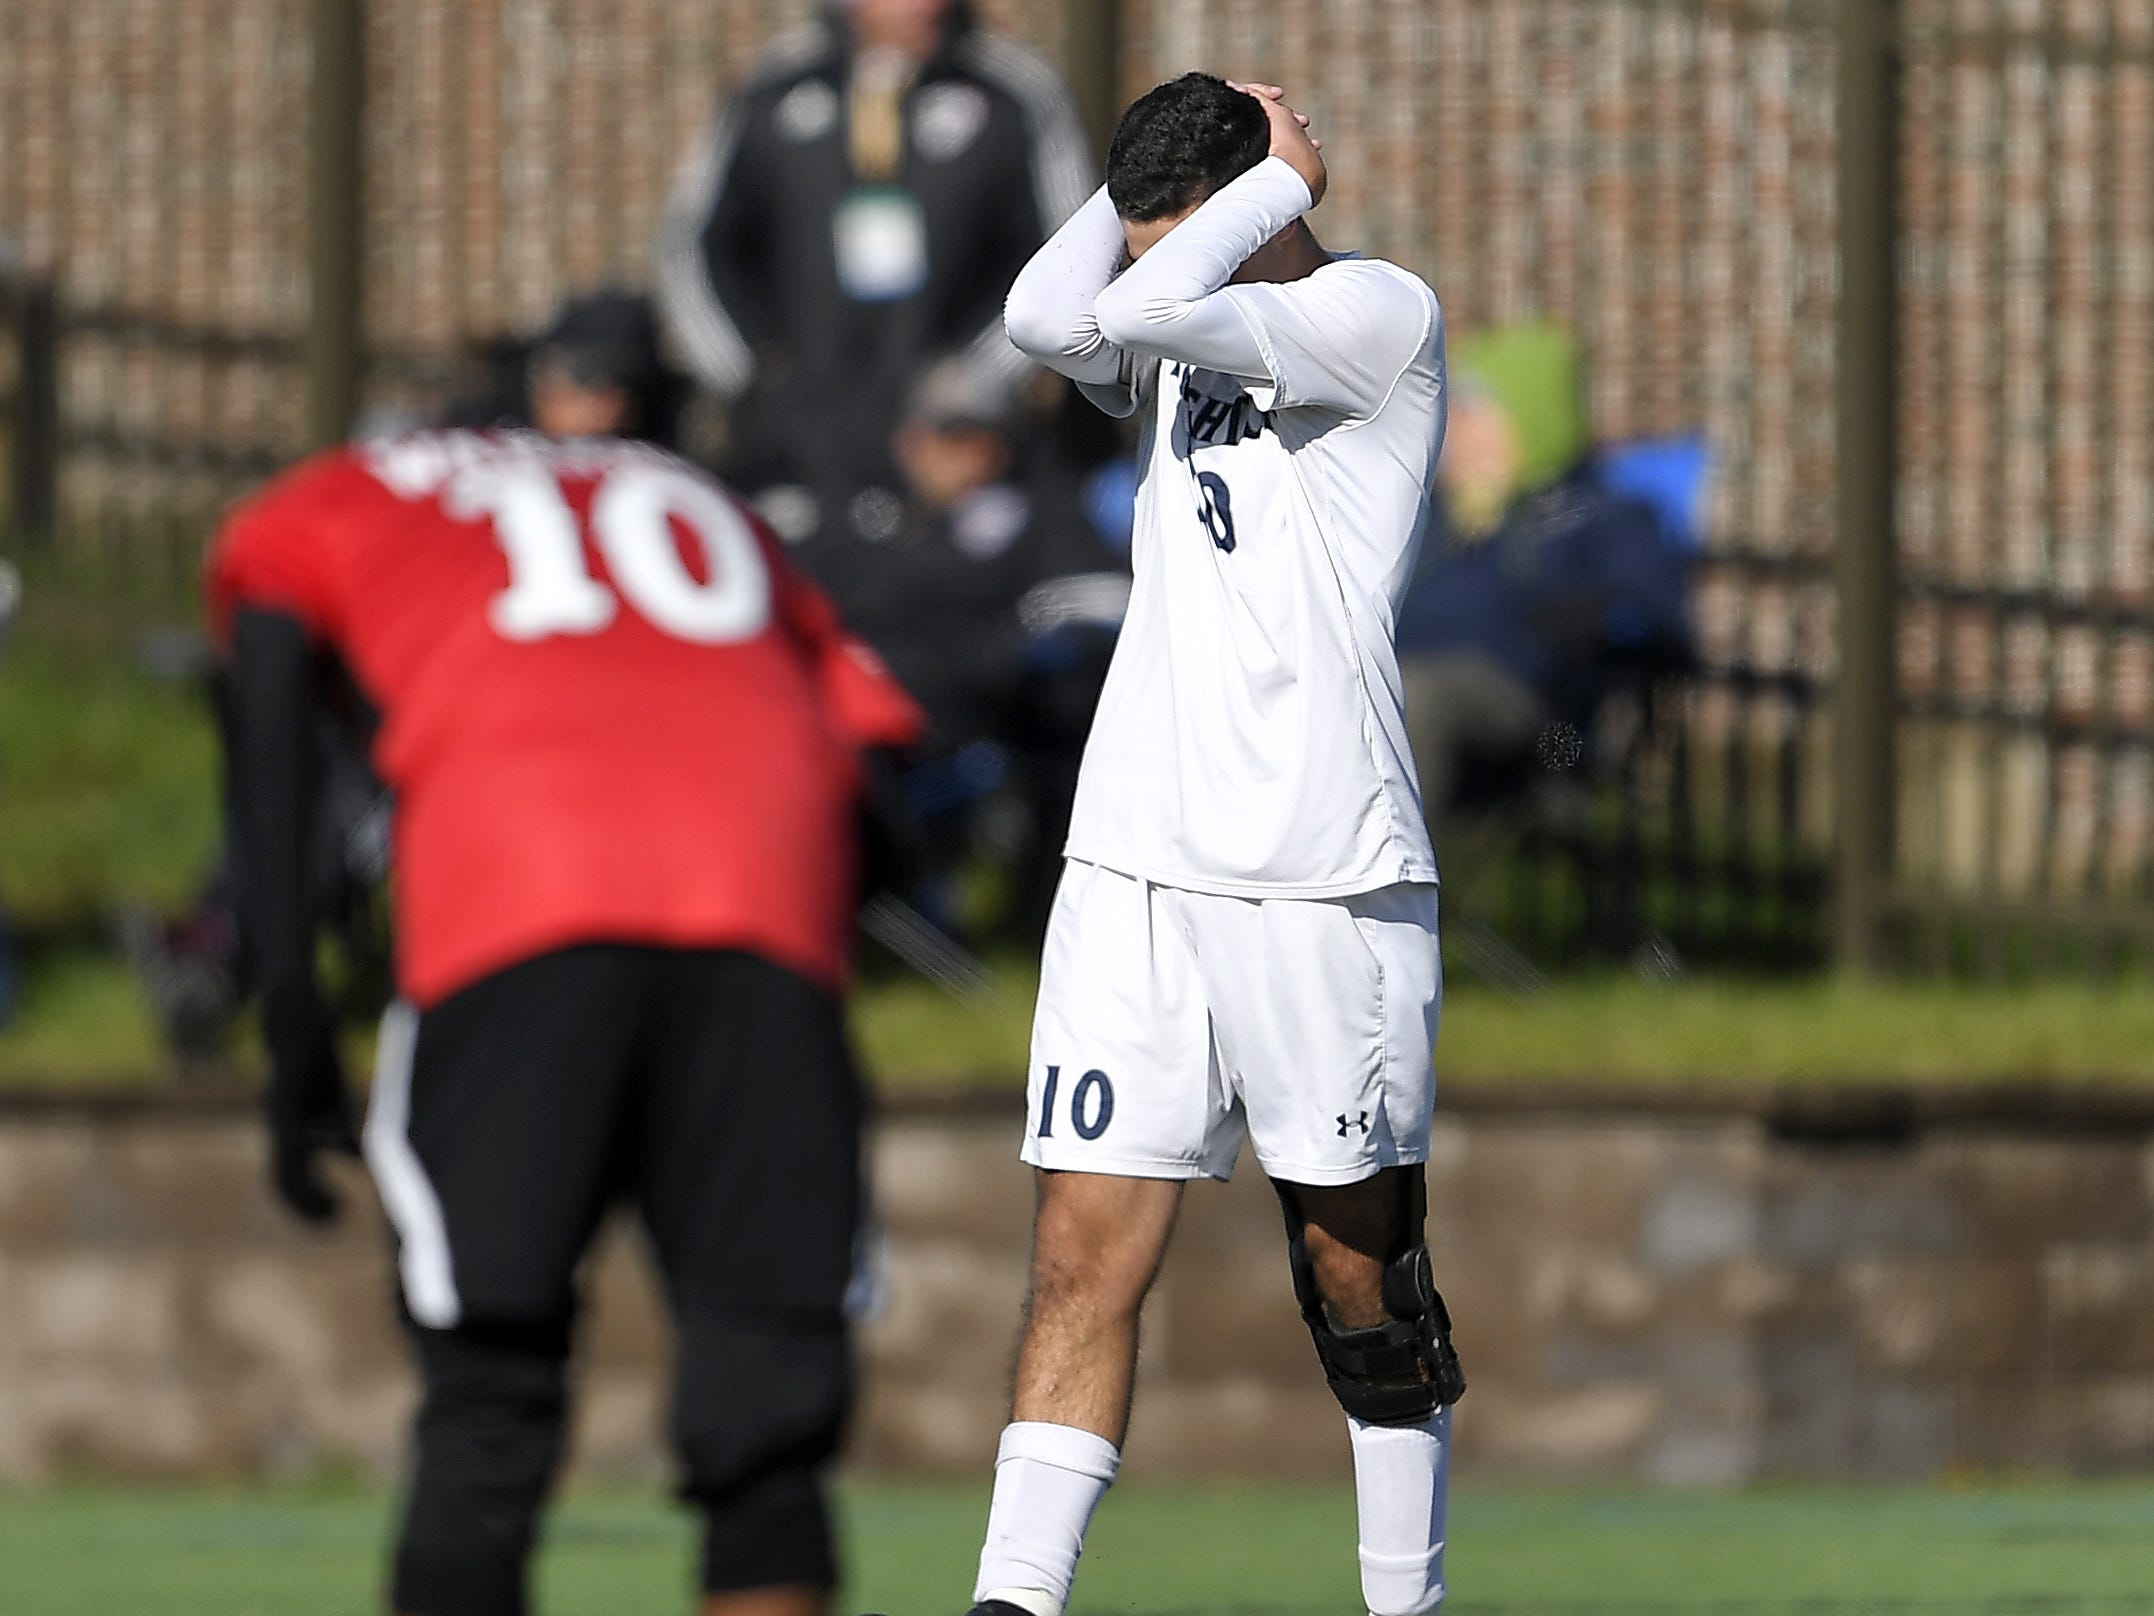 Brighton's Caio De Medeiros reacts after nearly missing a shot on goal during a Class A semifinal at the NYSPHSAA Boys Soccer Championships in Newburgh, N.Y., Saturday, Nov. 10, 2018. Brighton's season ended with a 2-0 loss to Amityville-XI.